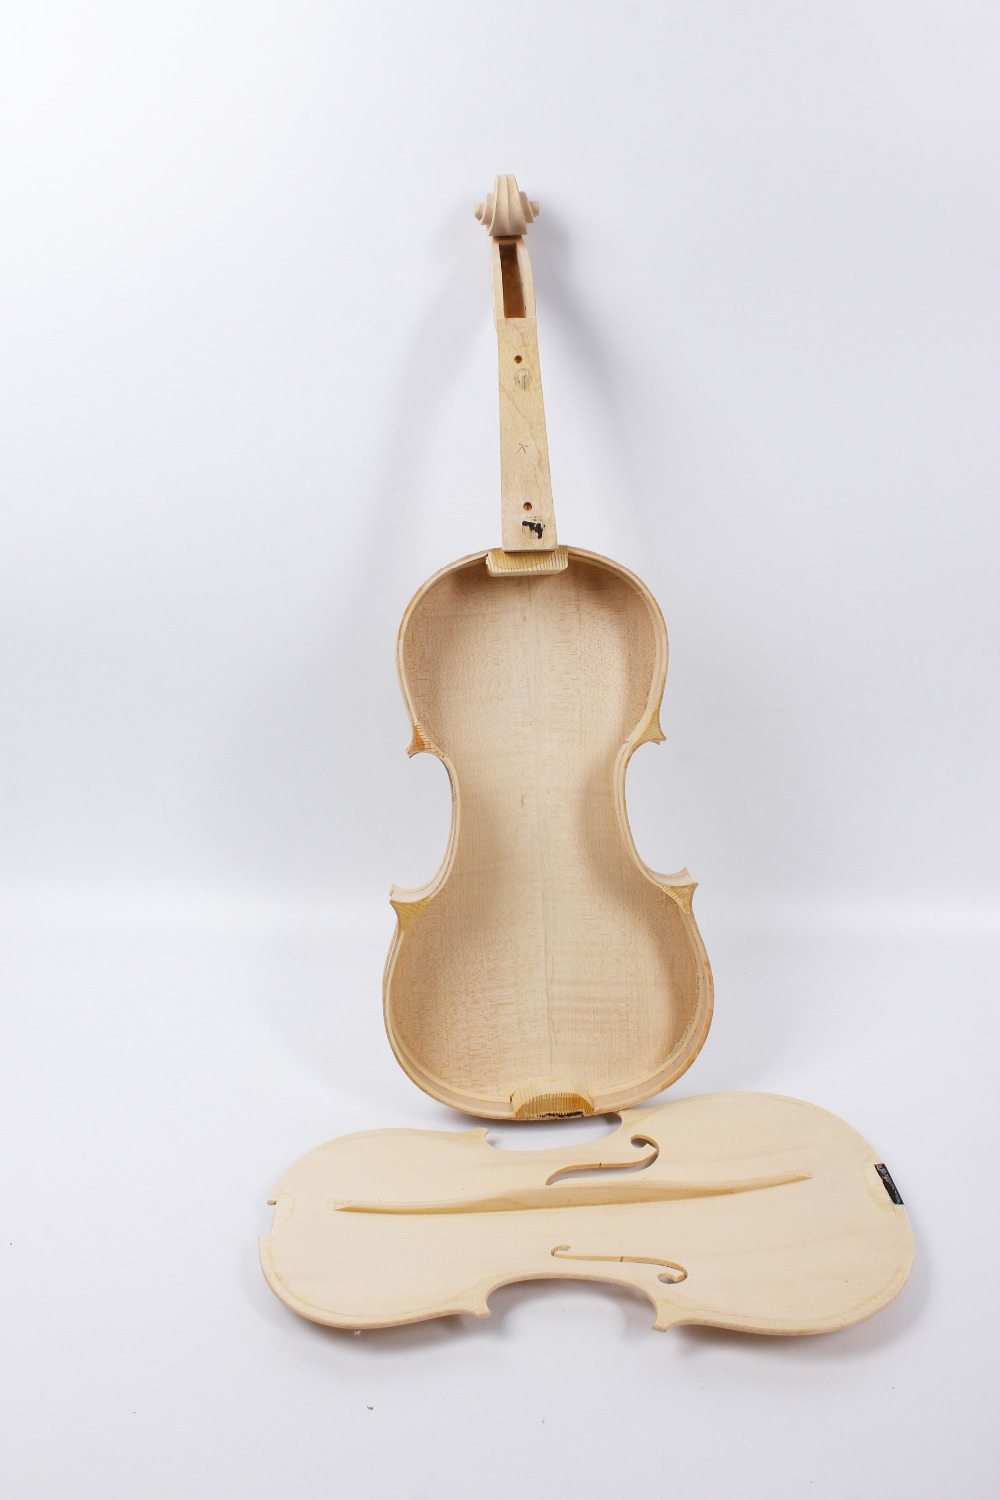 Yinfente White Unfinished Violin Flame Maple & Spruce wood Unglue Violin Accessories Violin Parts 4/4 Full Size new professional violin use 4 4 full size adjustable maple wood violin shoulder rest support for violin parts